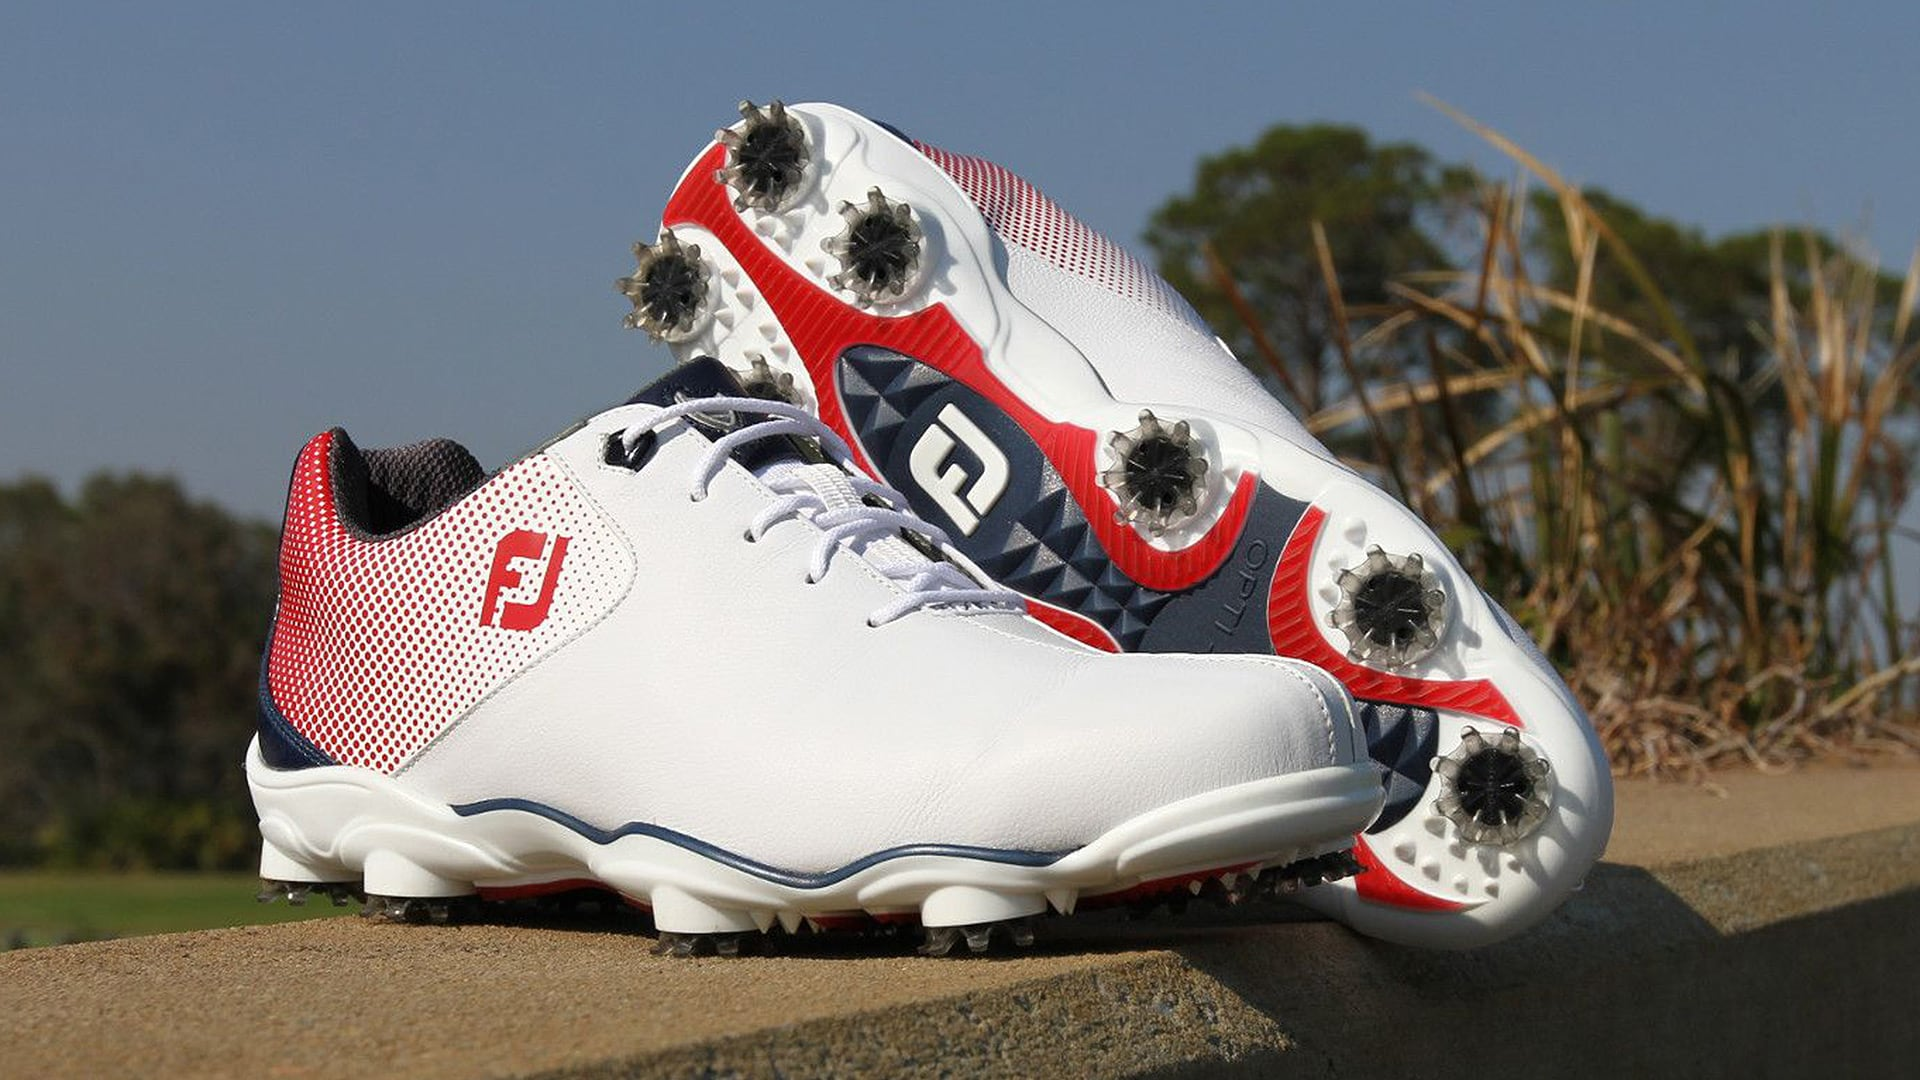 936e3fc3b FootJoy introduces DNA Helix shoe. By Golf Channel Digital